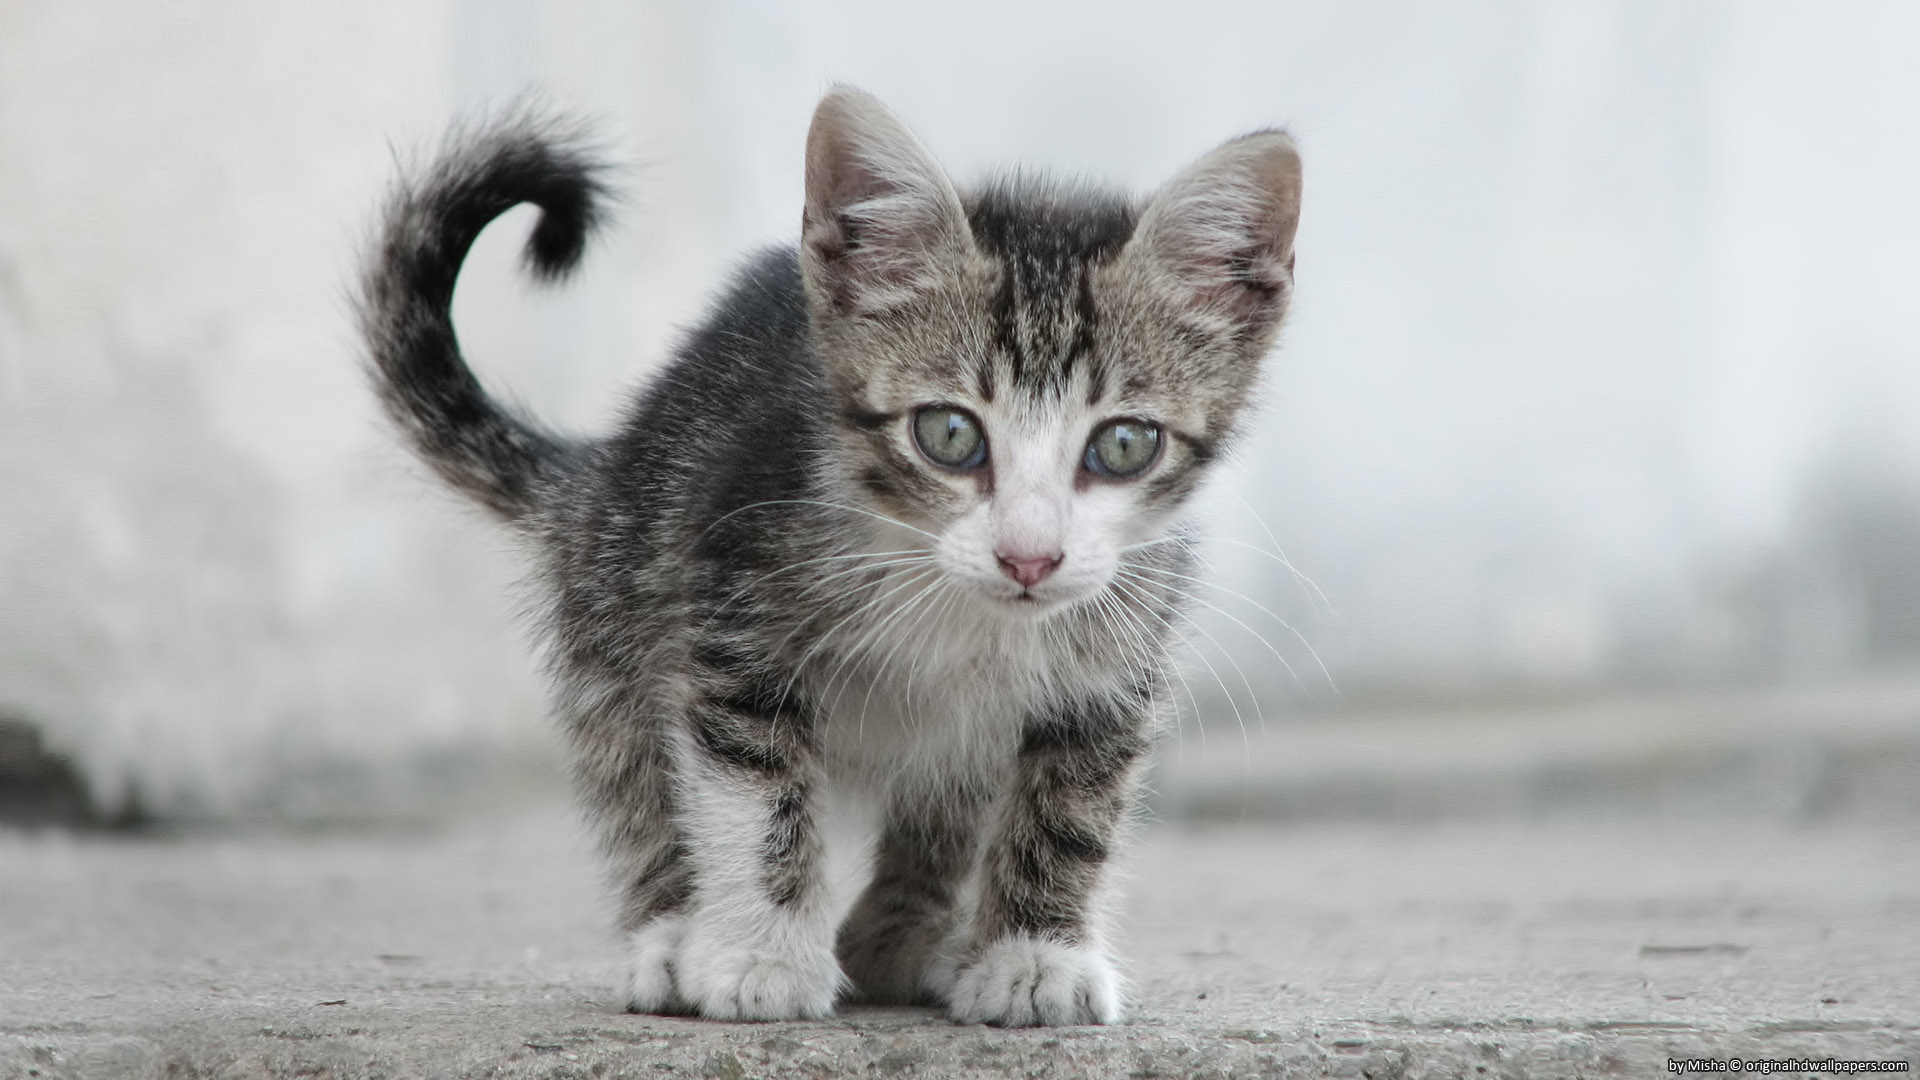 Small Sweet Cat for 1920 x 1080 HDTV 1080p resolution